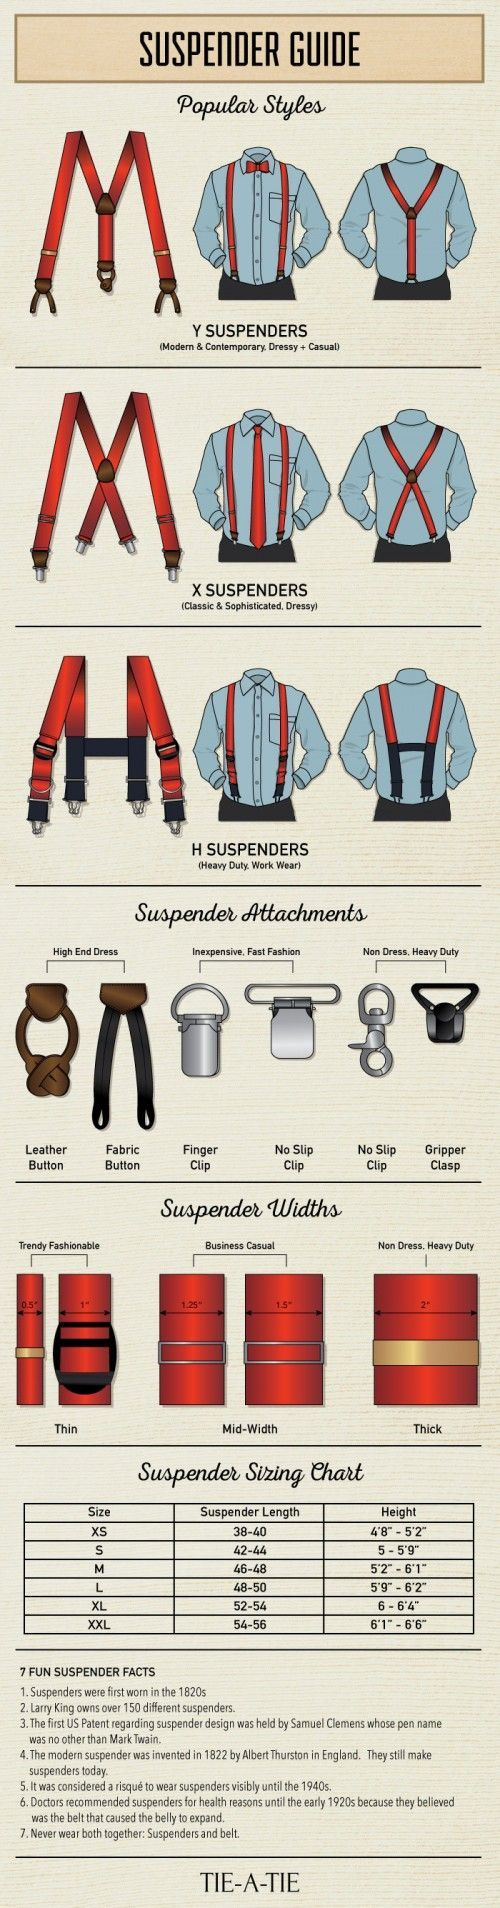 How to properly wear suspenders!